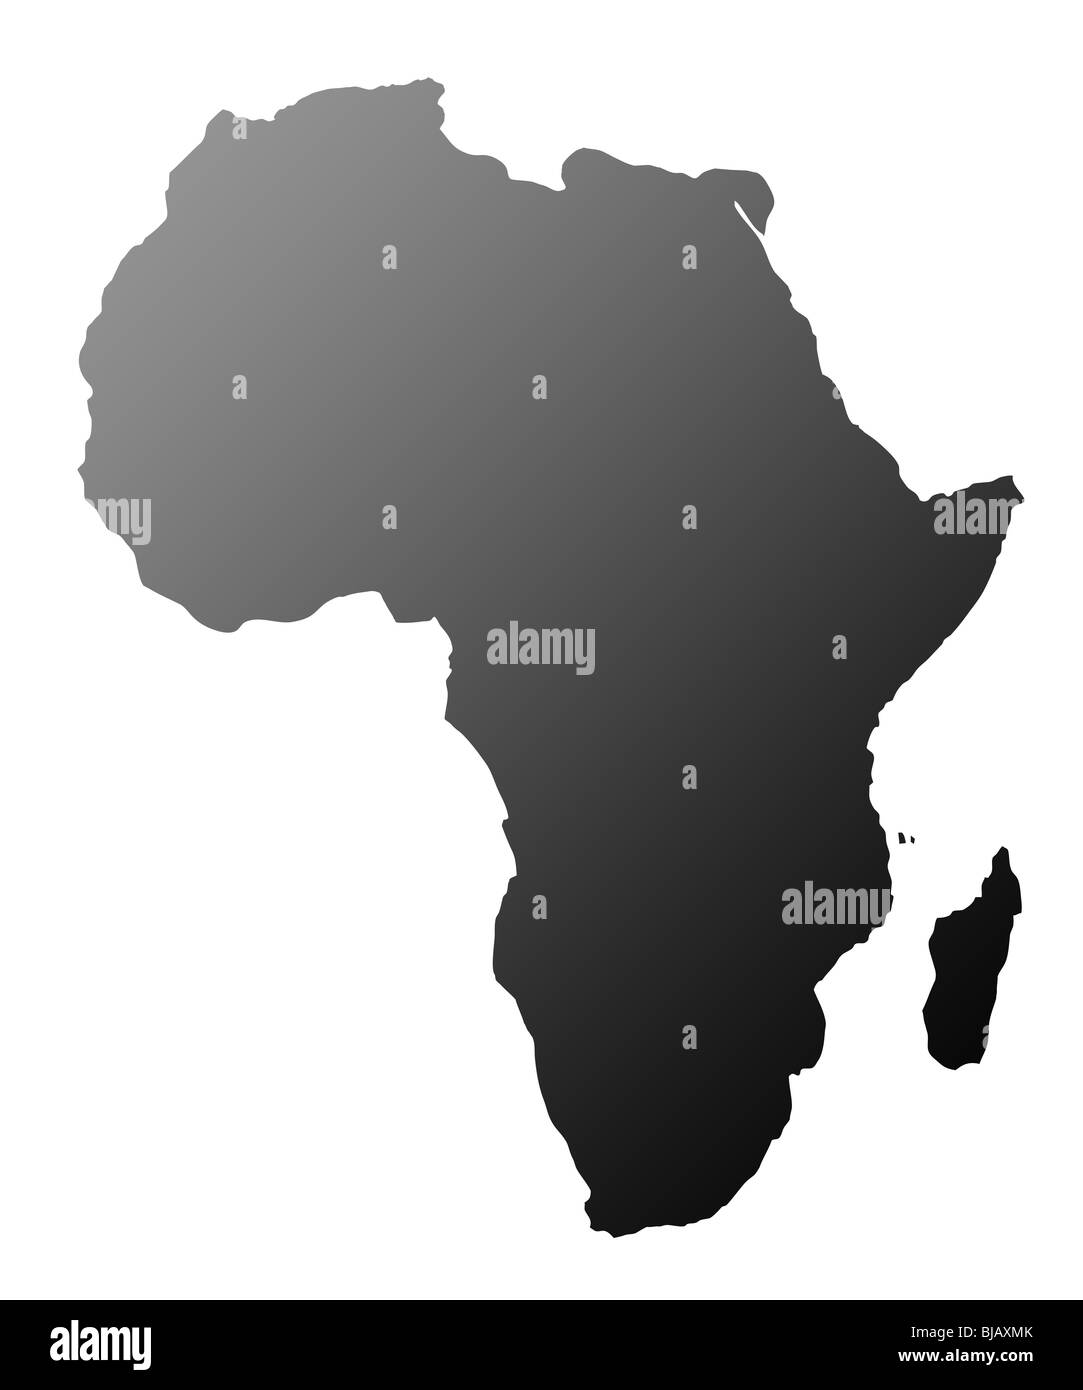 Silhouette of african continent isolated on white background stock image